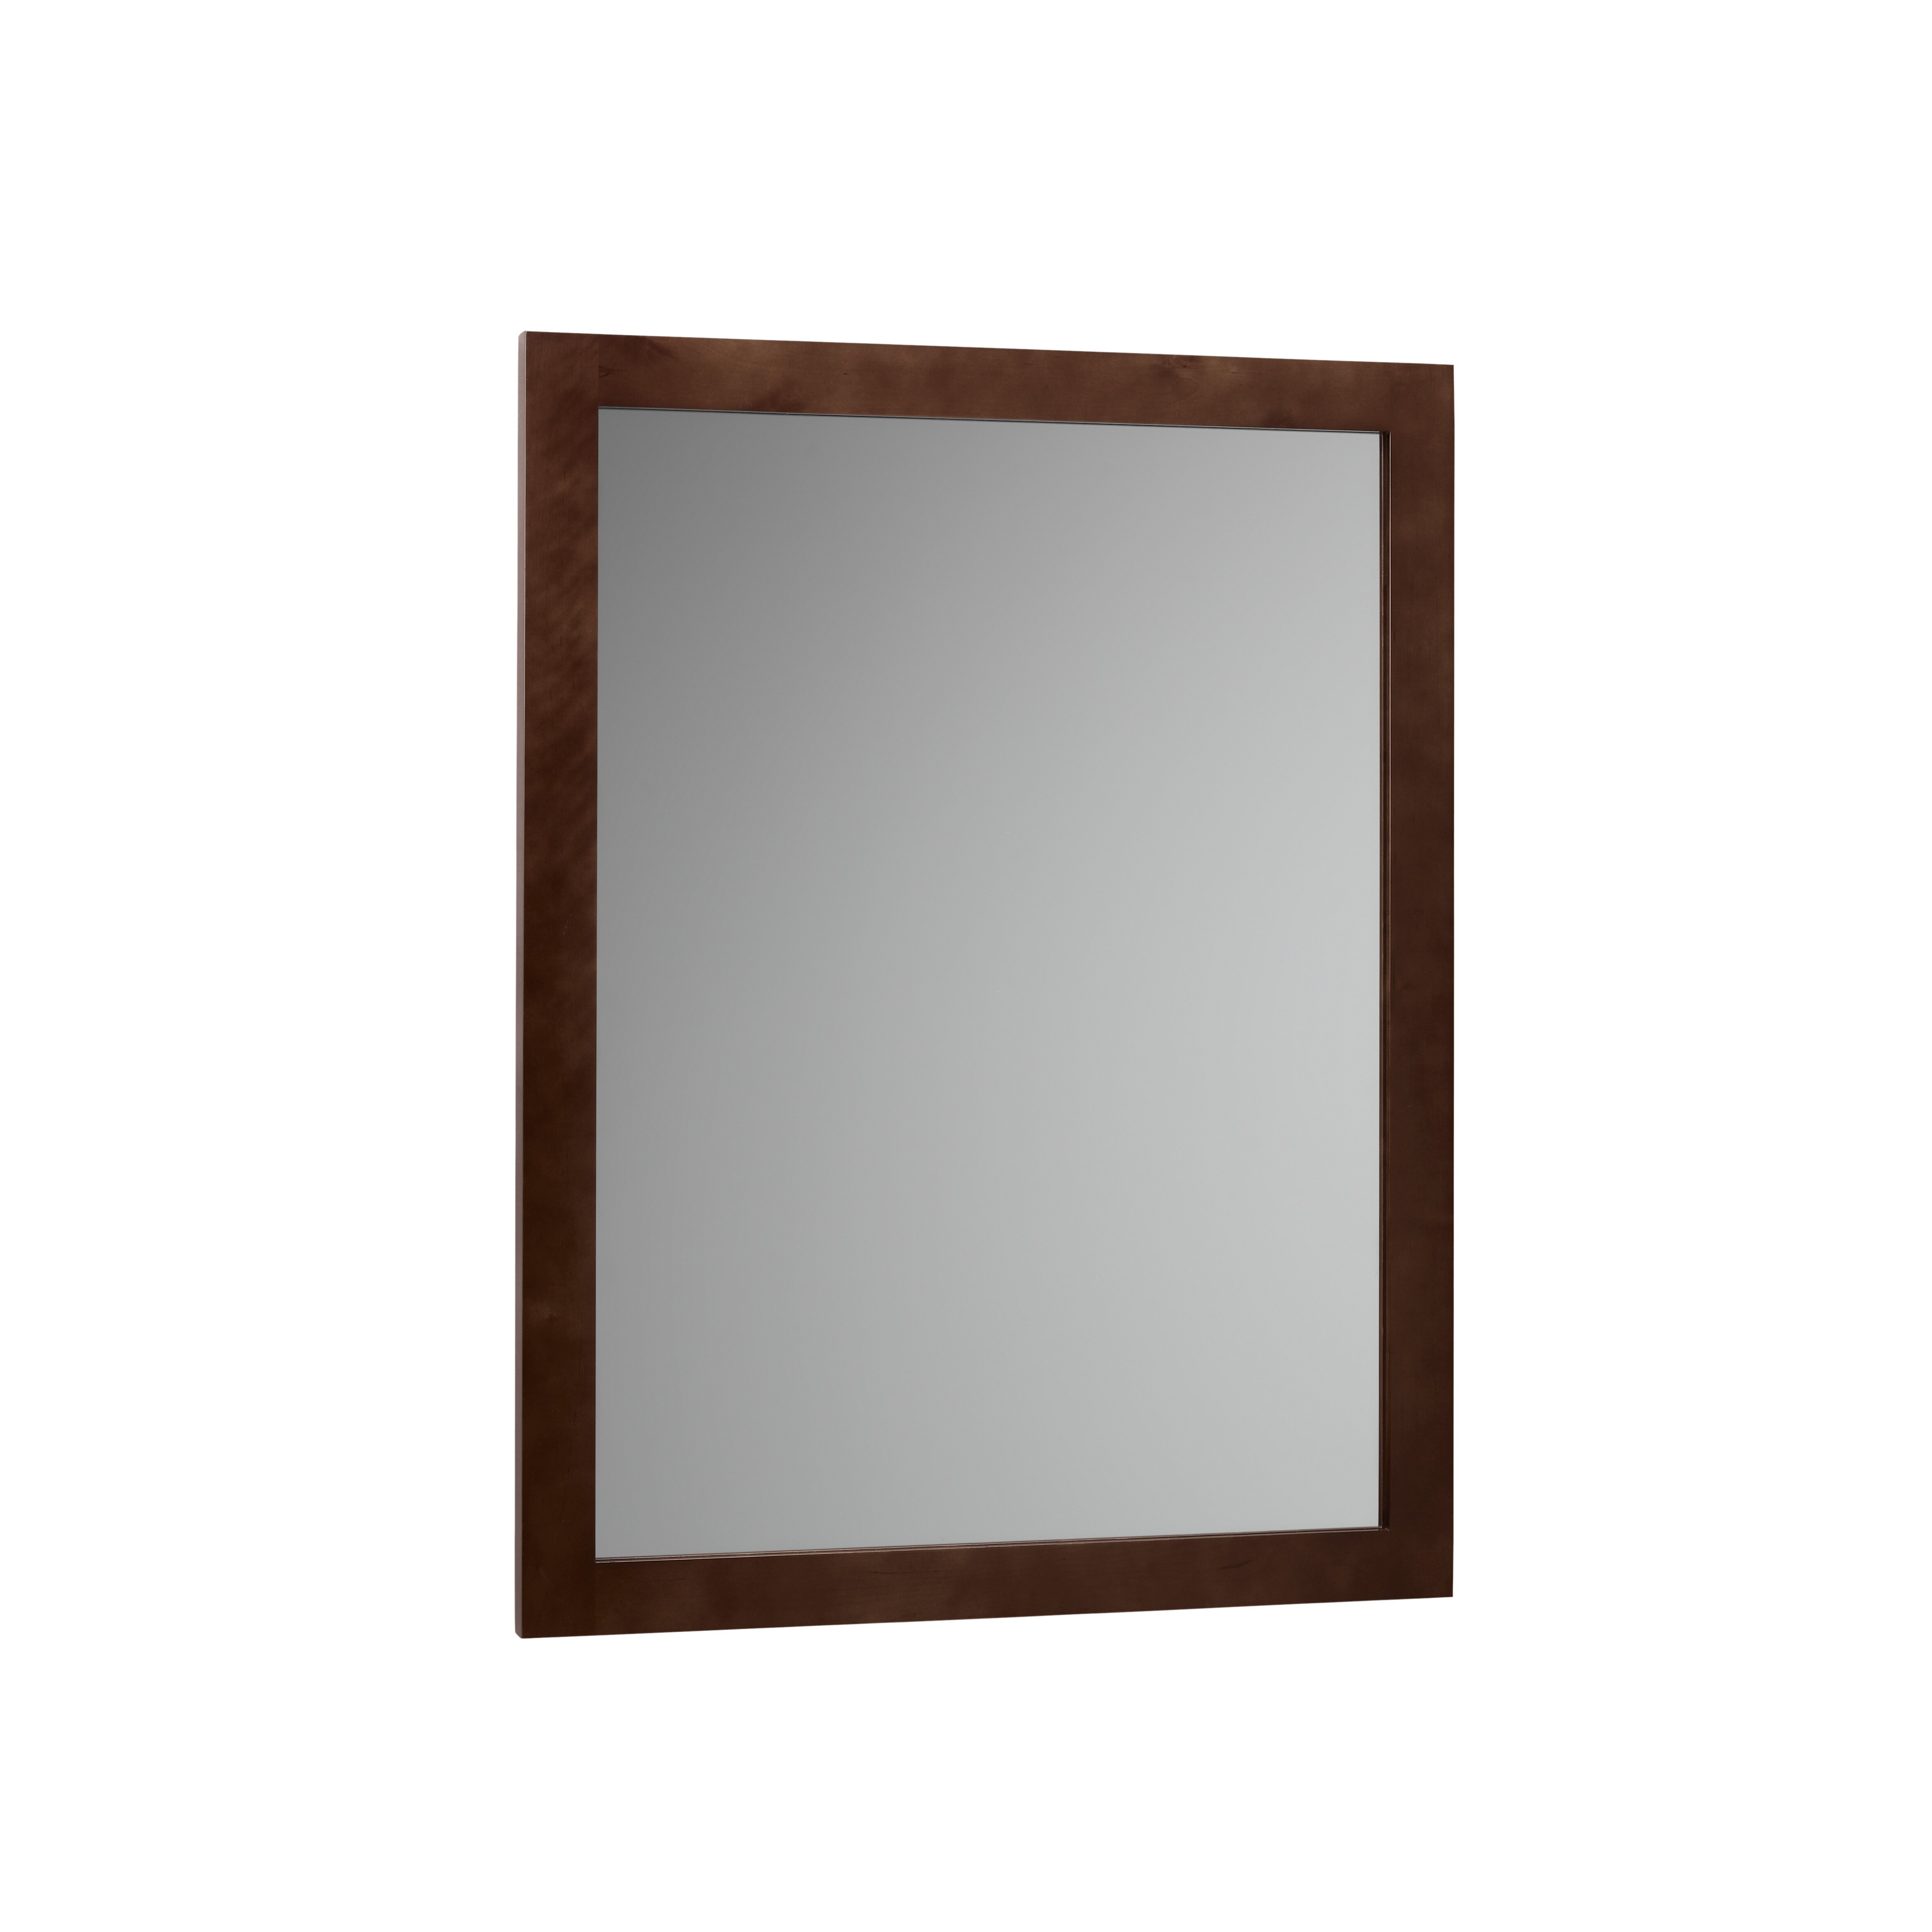 Ronbow contemporary solid wood framed bathroom mirror in dark cherry reviews wayfair for Cherry wood framed bathroom mirrors